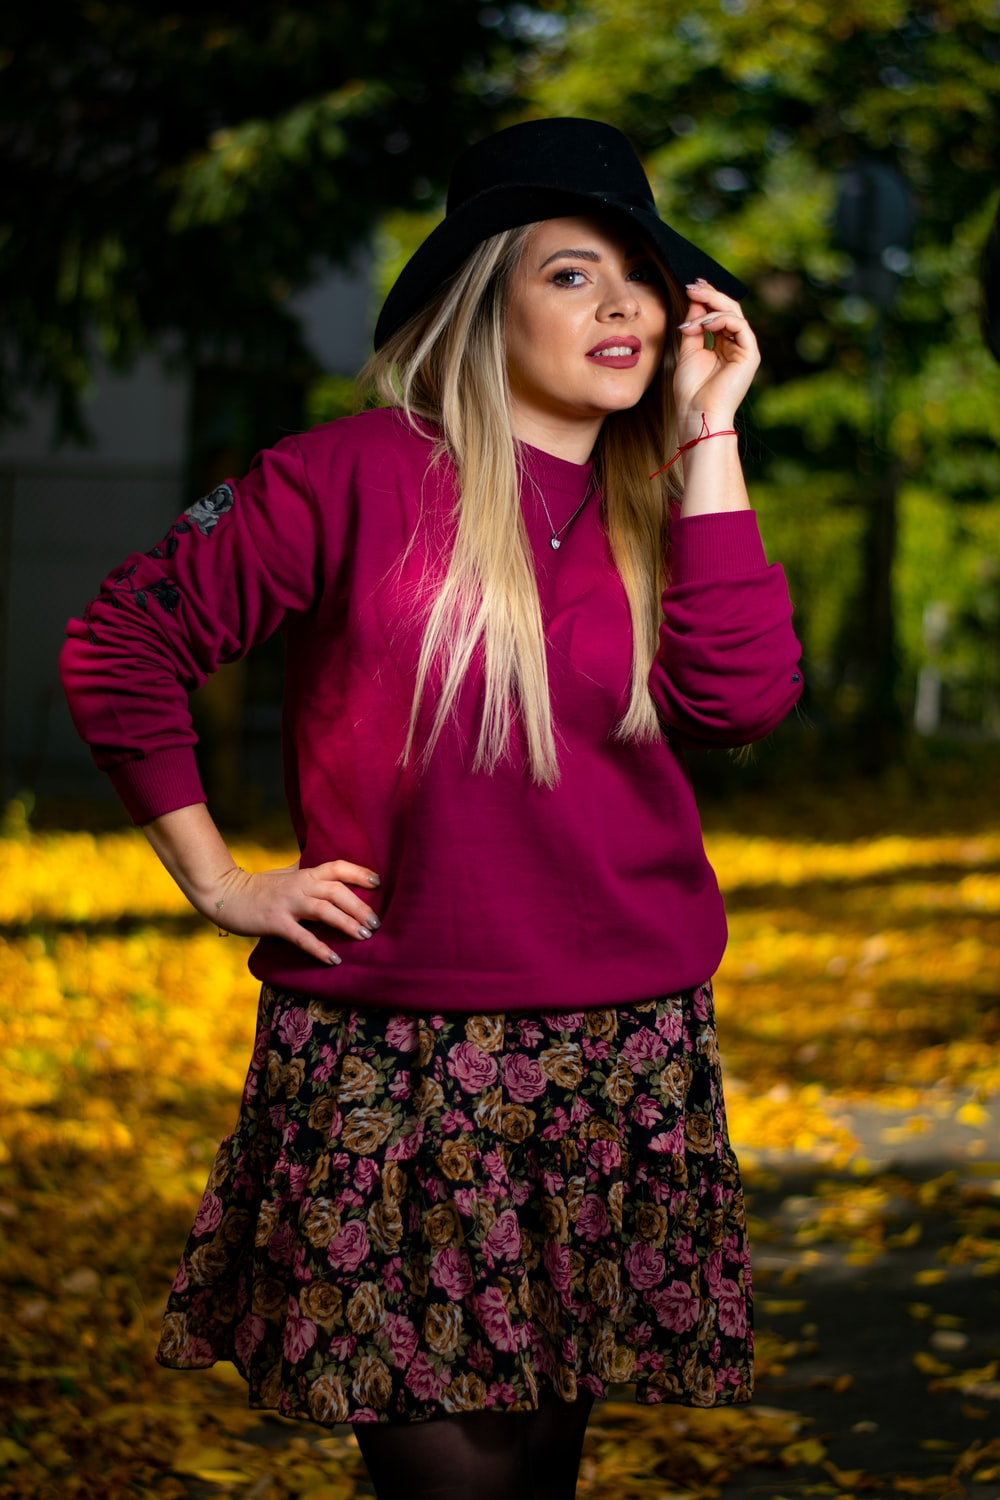 woman in purple long sleeve shirt and black and pink floral skirt